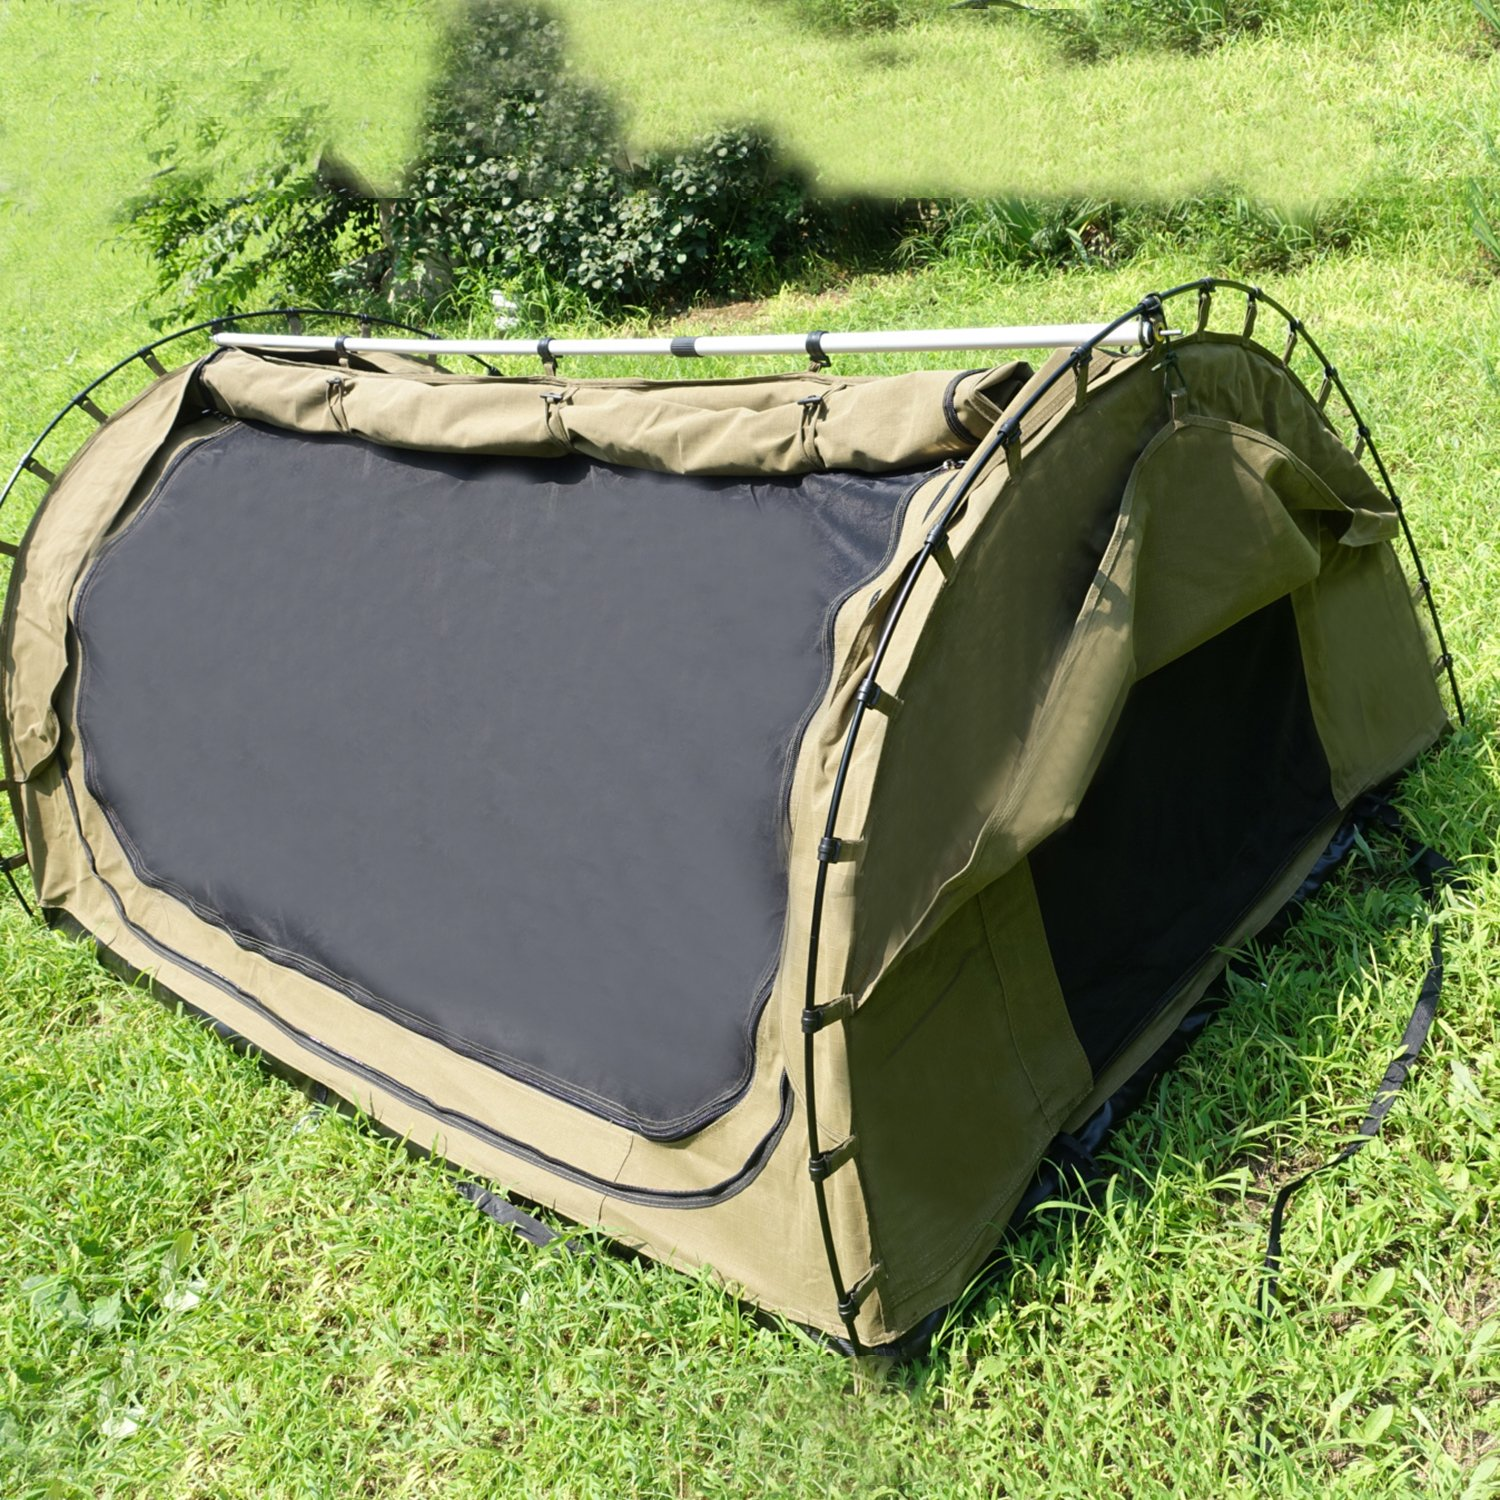 SUNOOM Double Canvas Swag Tent with Fire-Retardant Waterproof and Heat Preservation Fabric Material + Sleeping Pad / Mattress + Carry Bag (2 Person) by SUNOOM (Image #3)